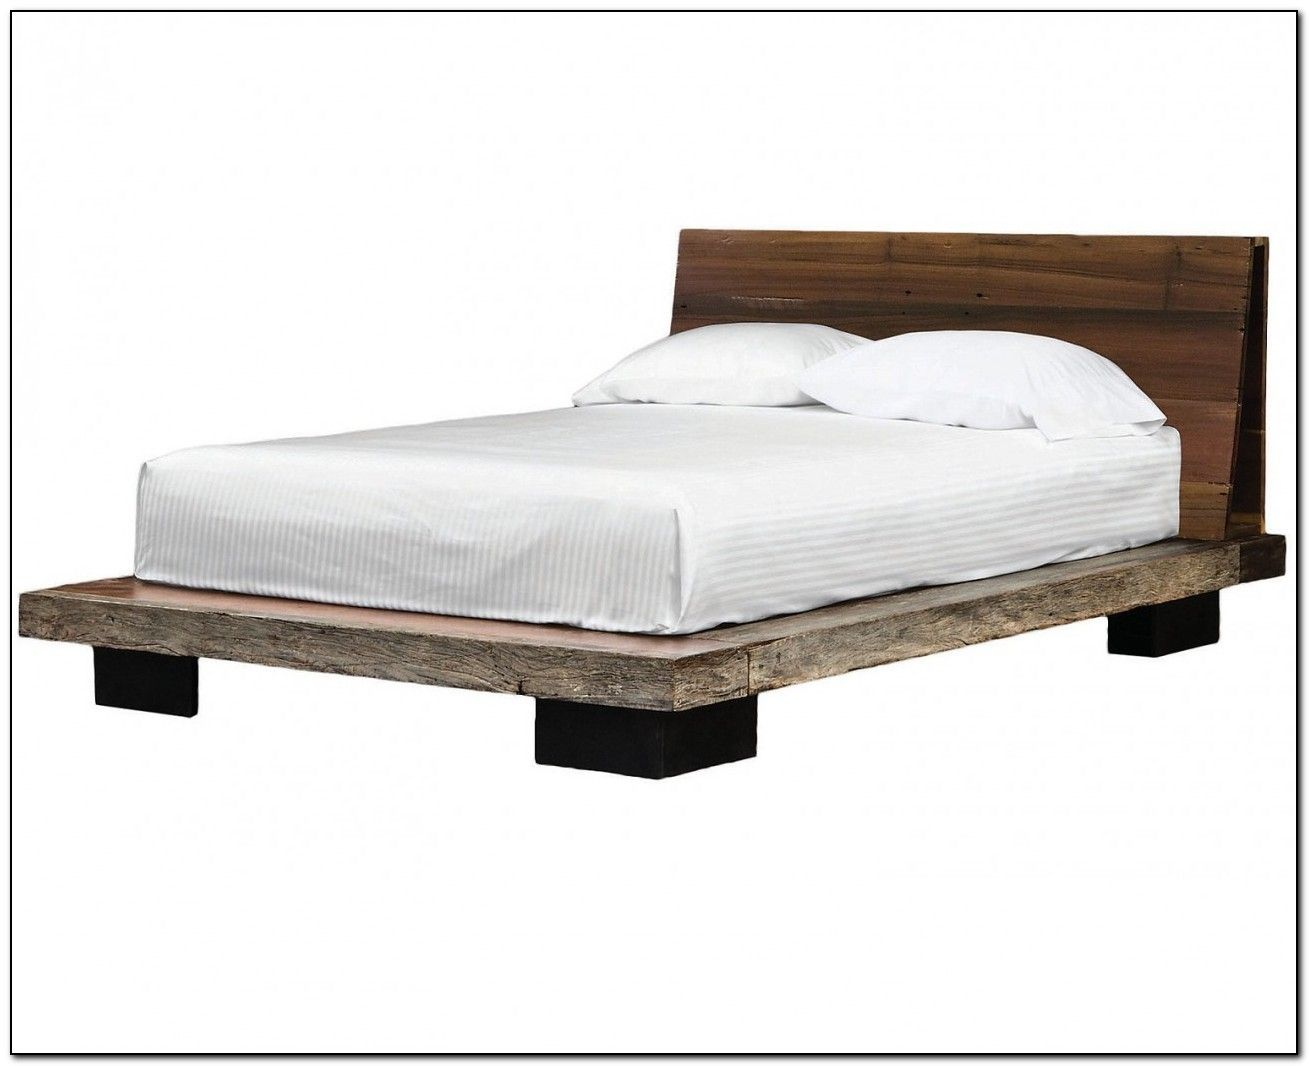 Inexpensive Queen Bed Frame | BEDS DESIGN | Pinterest | Bed, Bed ...